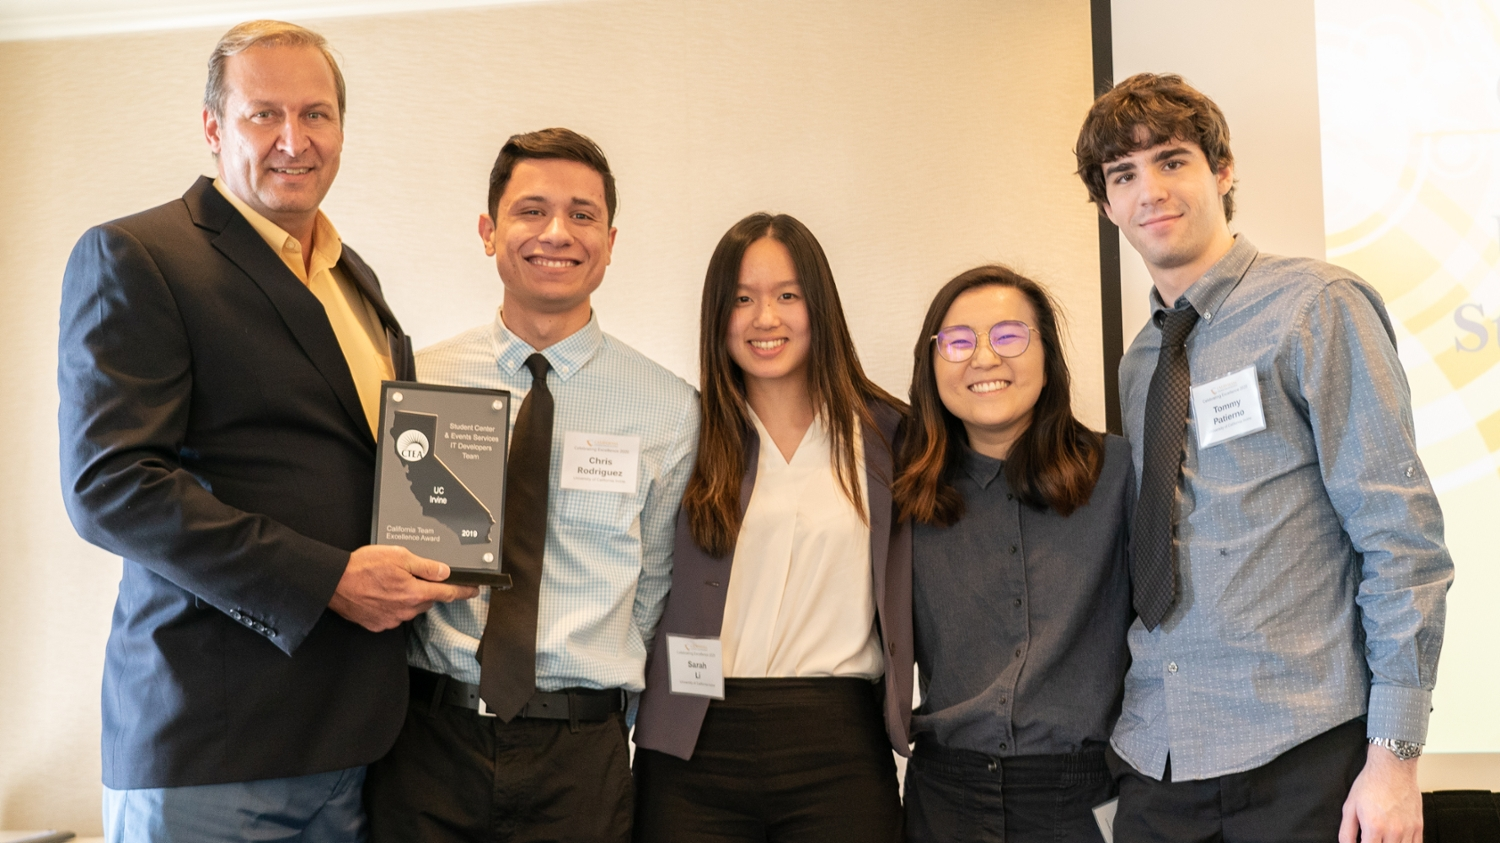 Marketing manager Brian Petyo holds the CTEA award with four members of his team of ICS students (from left): Chris Rodriguez, Sarah Li, Yuchen